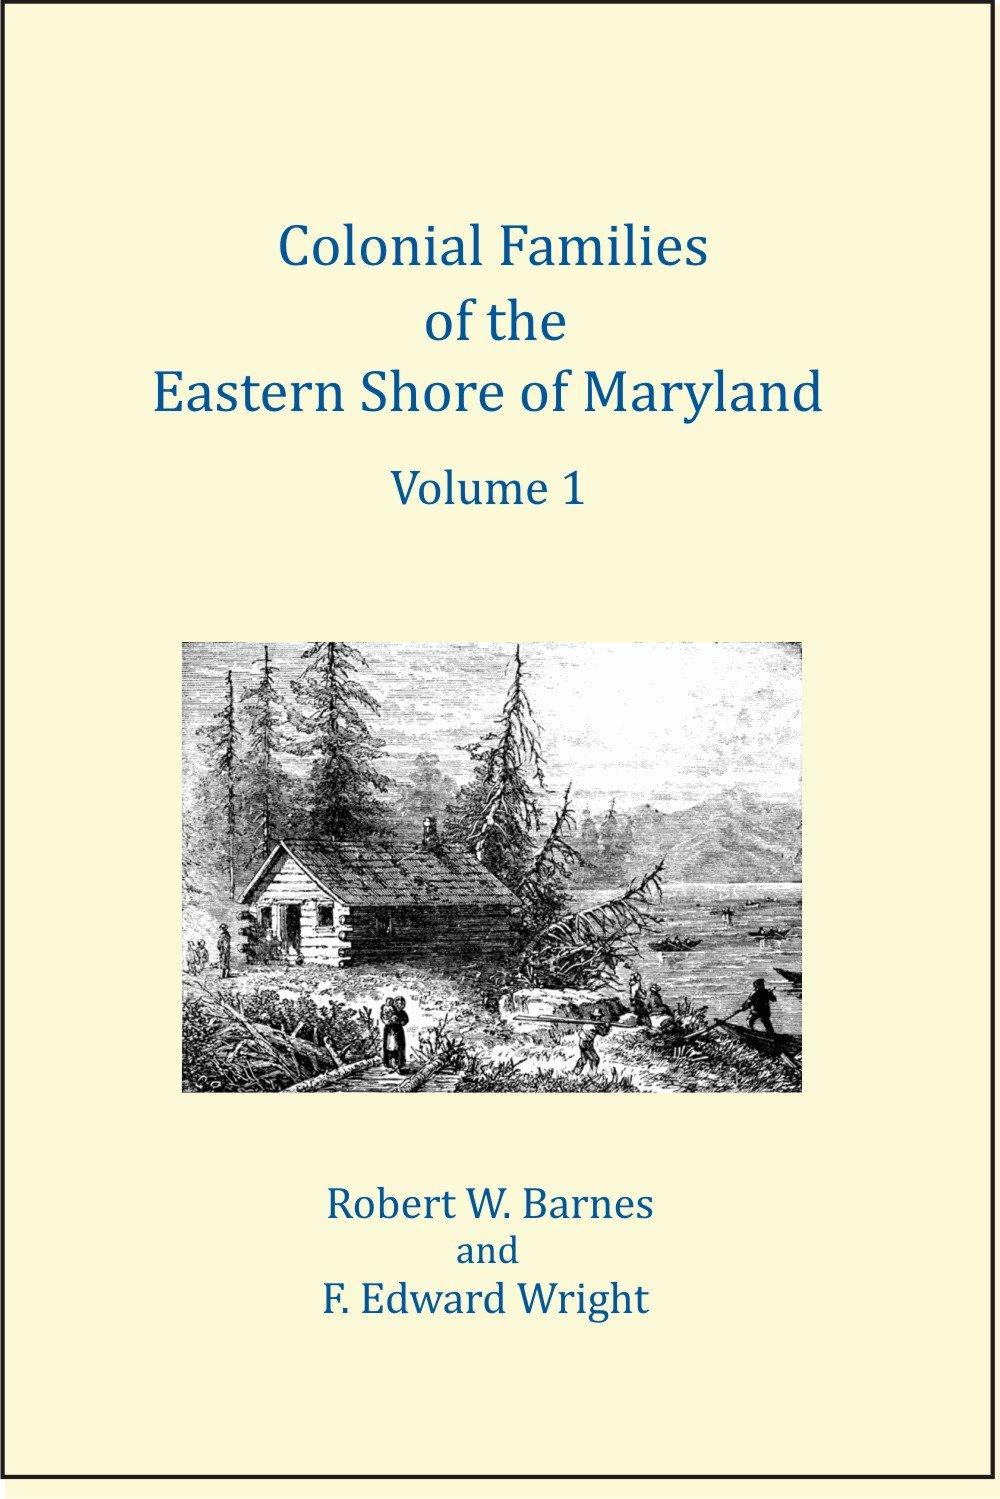 Colonial Families of the Eastern Shore of Maryland, Volume 1 pdf